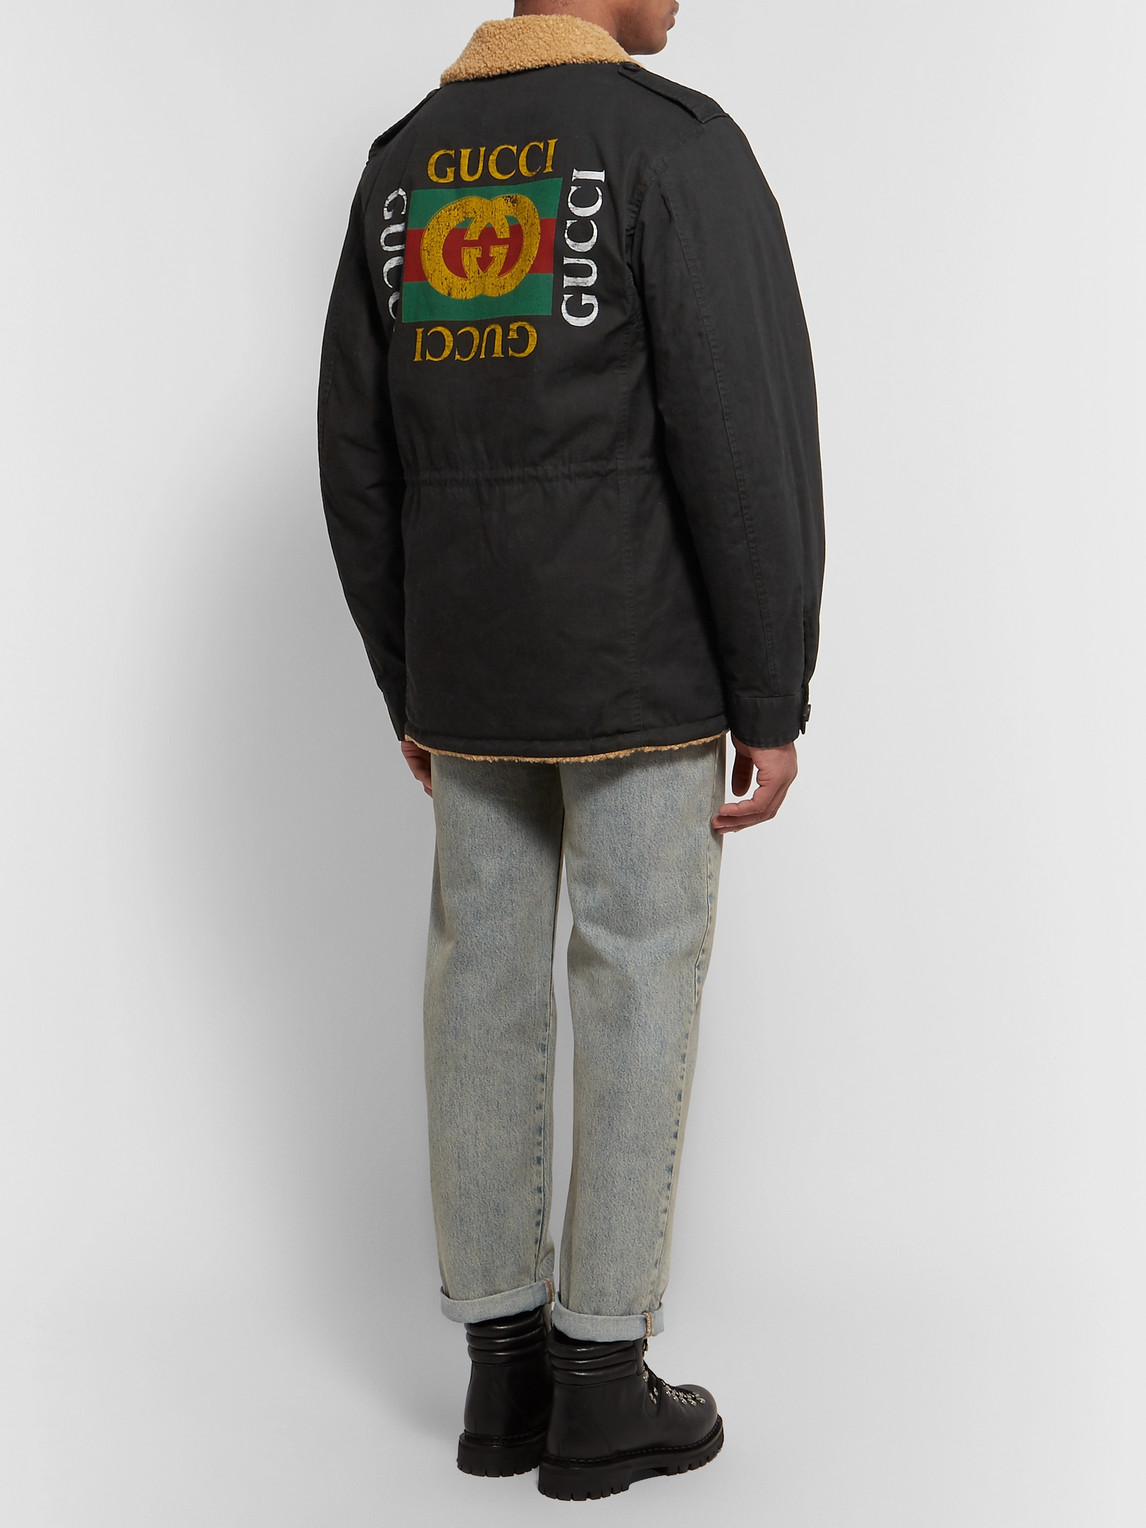 Gucci Jackets FAUX SHEARLING-LINED LOGO-PRINTED COTTON-CANVAS JACKET